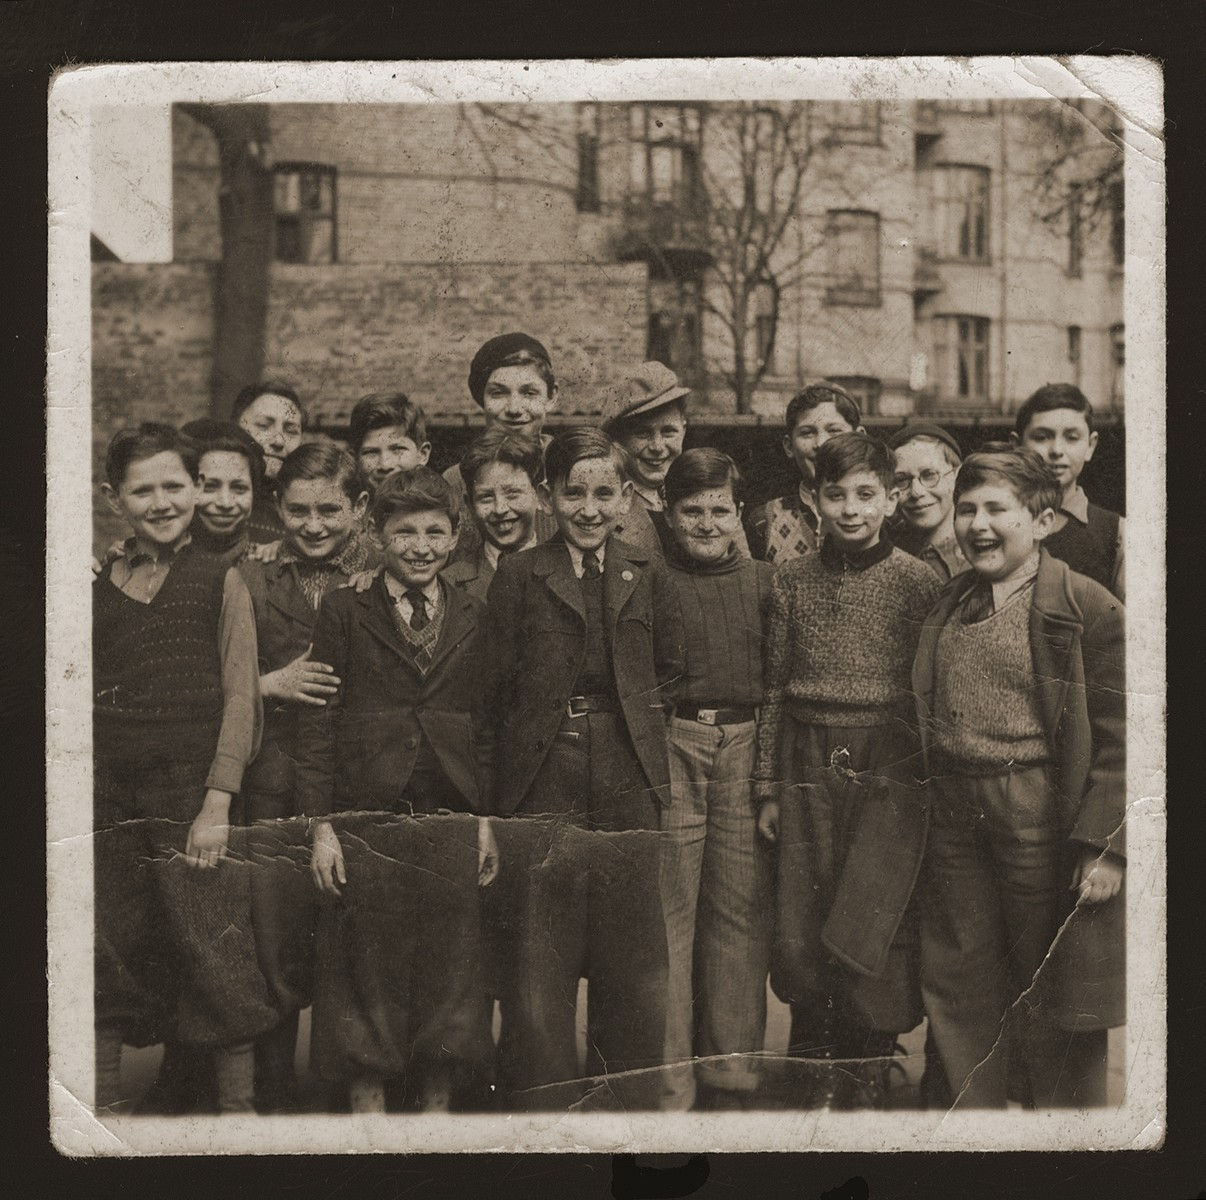 Boys from the Mosaisk Drengeskole (Mosaic Boys School).    Among those pictured are Artur Arnheim (front row, left), Raphael Sampolinsky (second from left), Bent Melchior, grandson of chief rabbi (fifth from left), Manfred Hildershein (back row center), Siegried Vogel (third from right).   The Mosaic School for Boys and the Caroline School for Girls were established in the beginning of the nineteenth century for the purpose of acculturating the children of Russian Jewish immigrants into Danish culture.  Though most of the teachers were not Jewish, the school also taught Jewish history and religion.